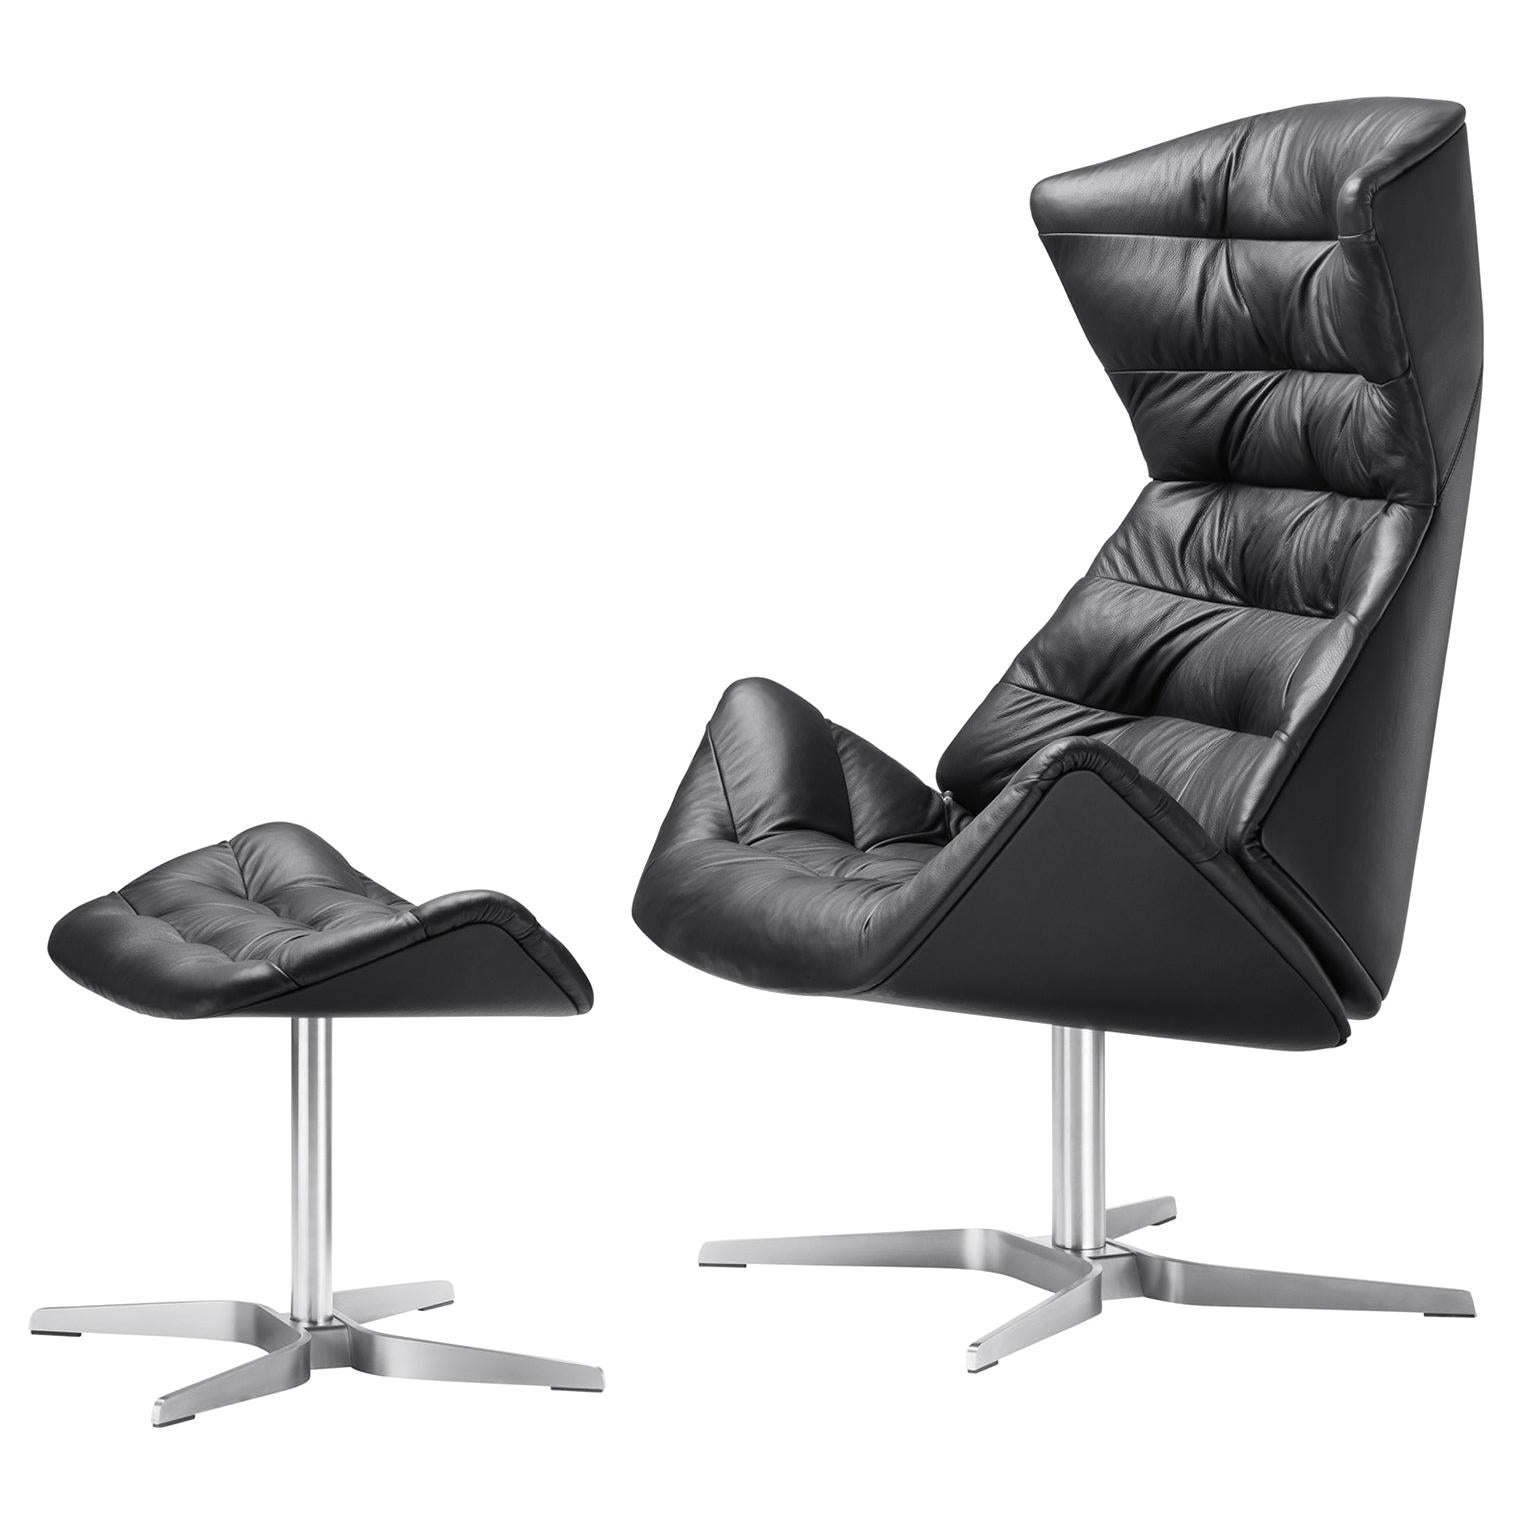 808 Swivel Recliner Lounge Leather Chair with Ottoman Designed by Formstelle